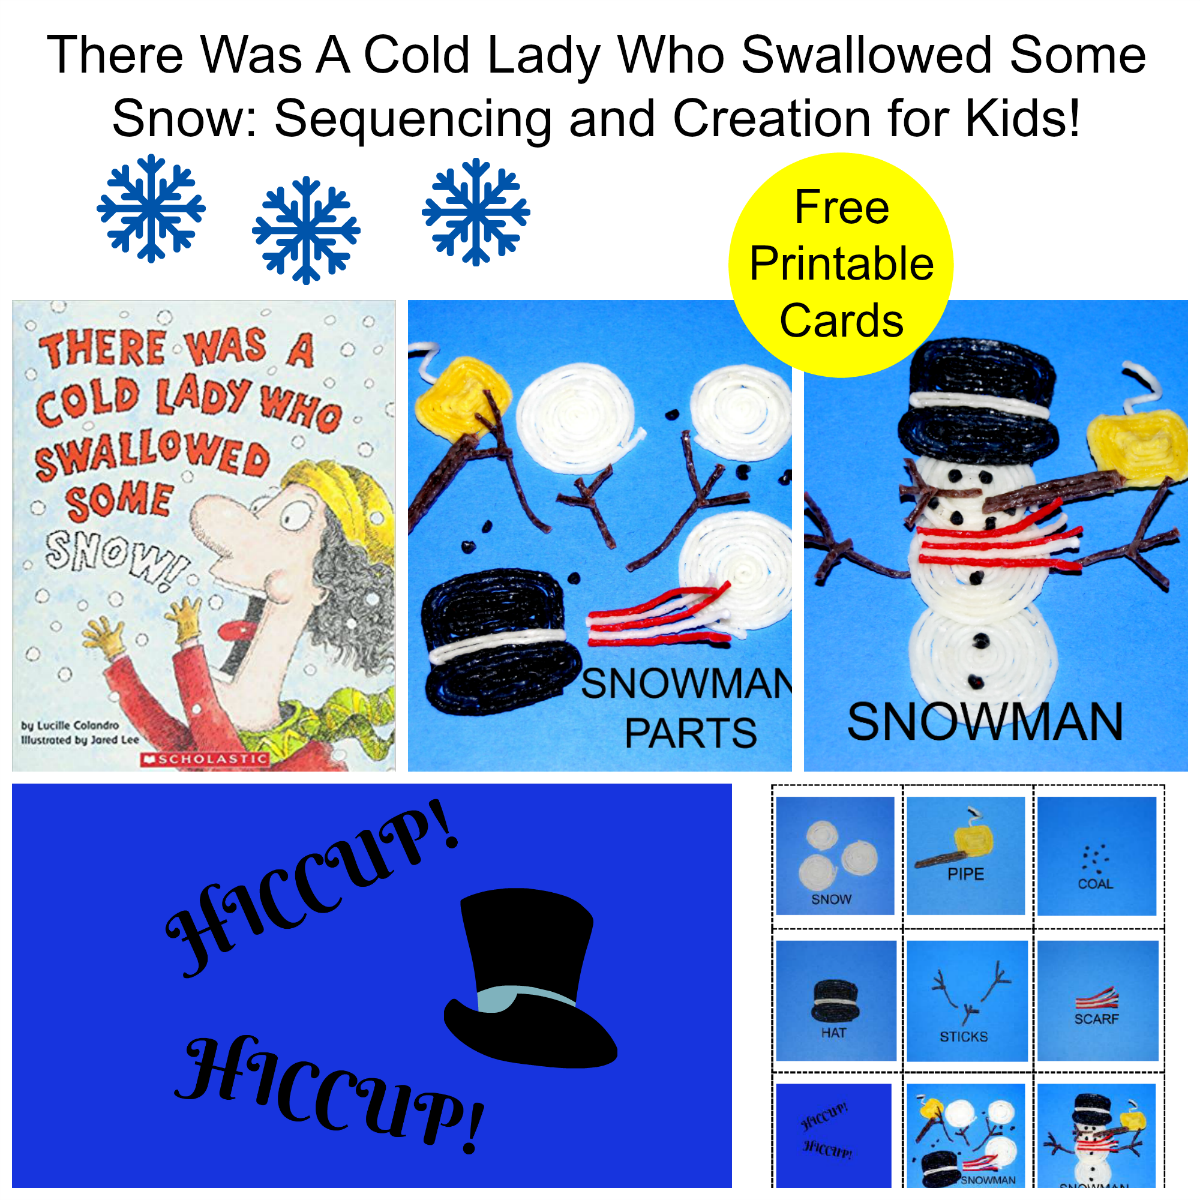 There Was A Cold Lady Who Swallowed Some Snow Sequencing and Creation for Kids